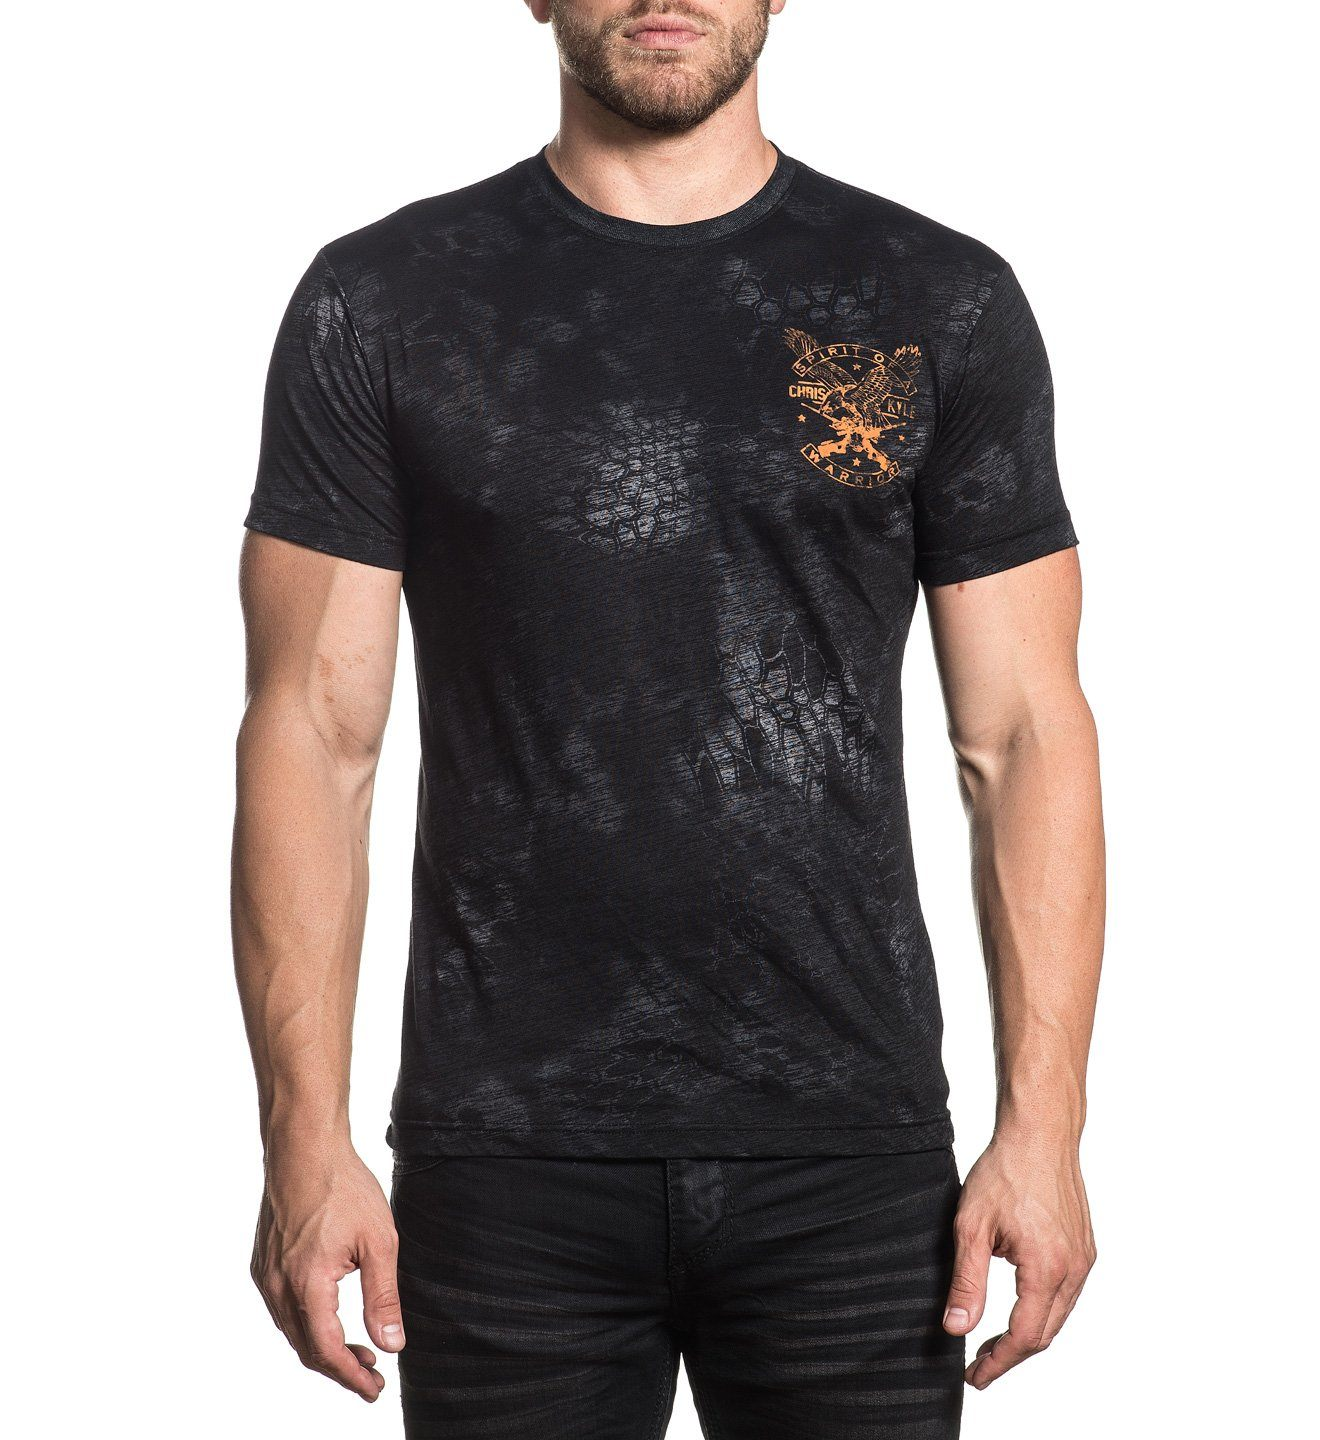 Chris Kyle Frog Foundation Made in the USA - Affliction Clothing